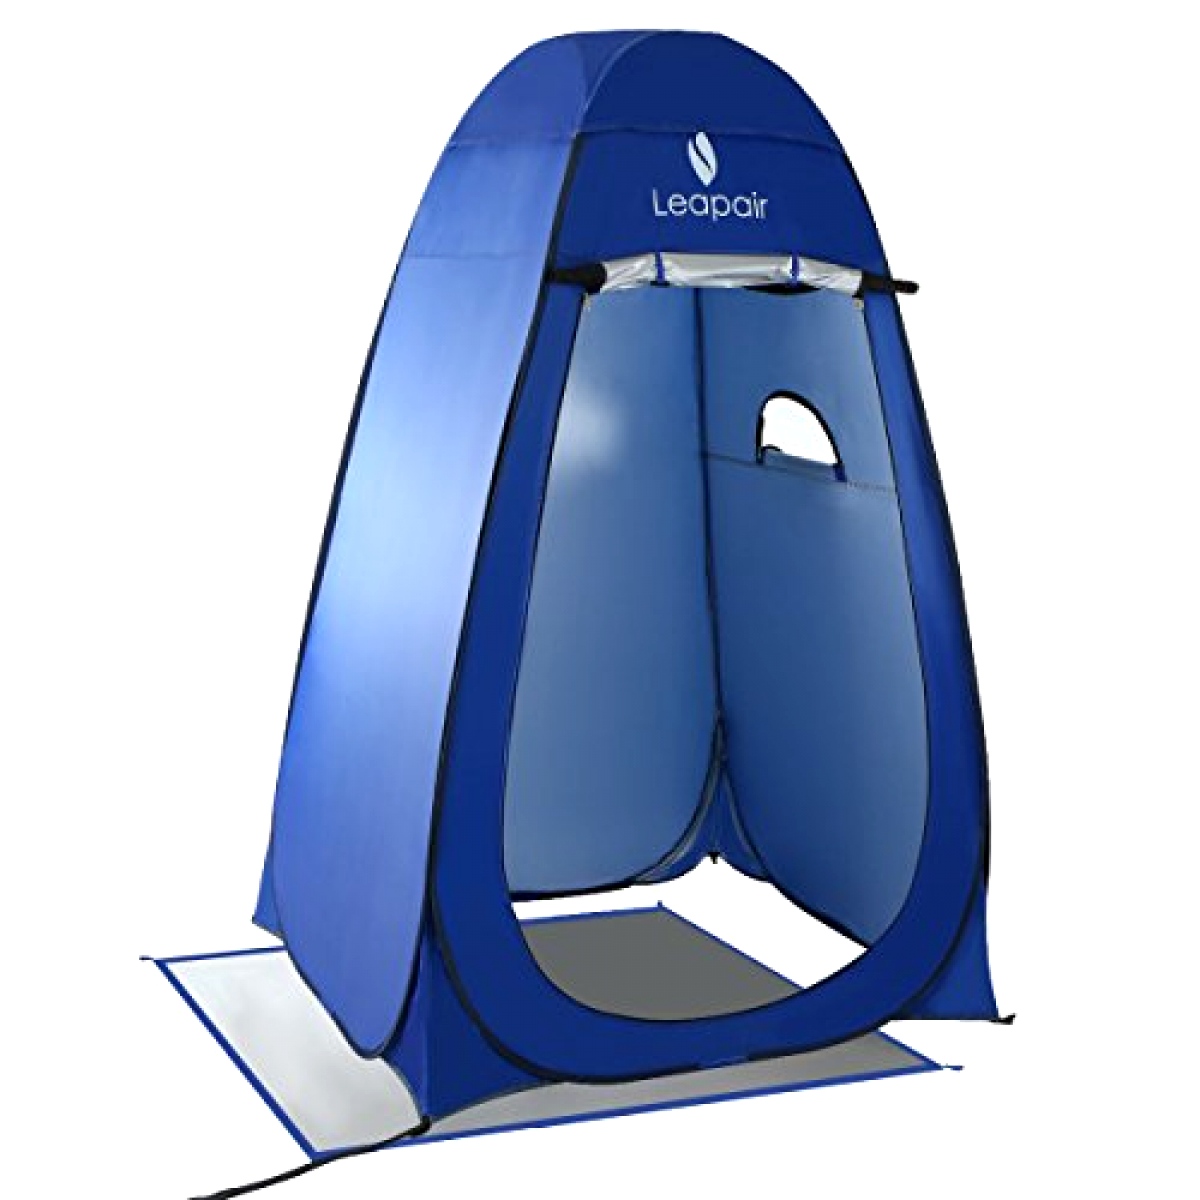 Portable Camping Pop Up Tents Changing Dressing Room Outdoor Privacy Blau, New